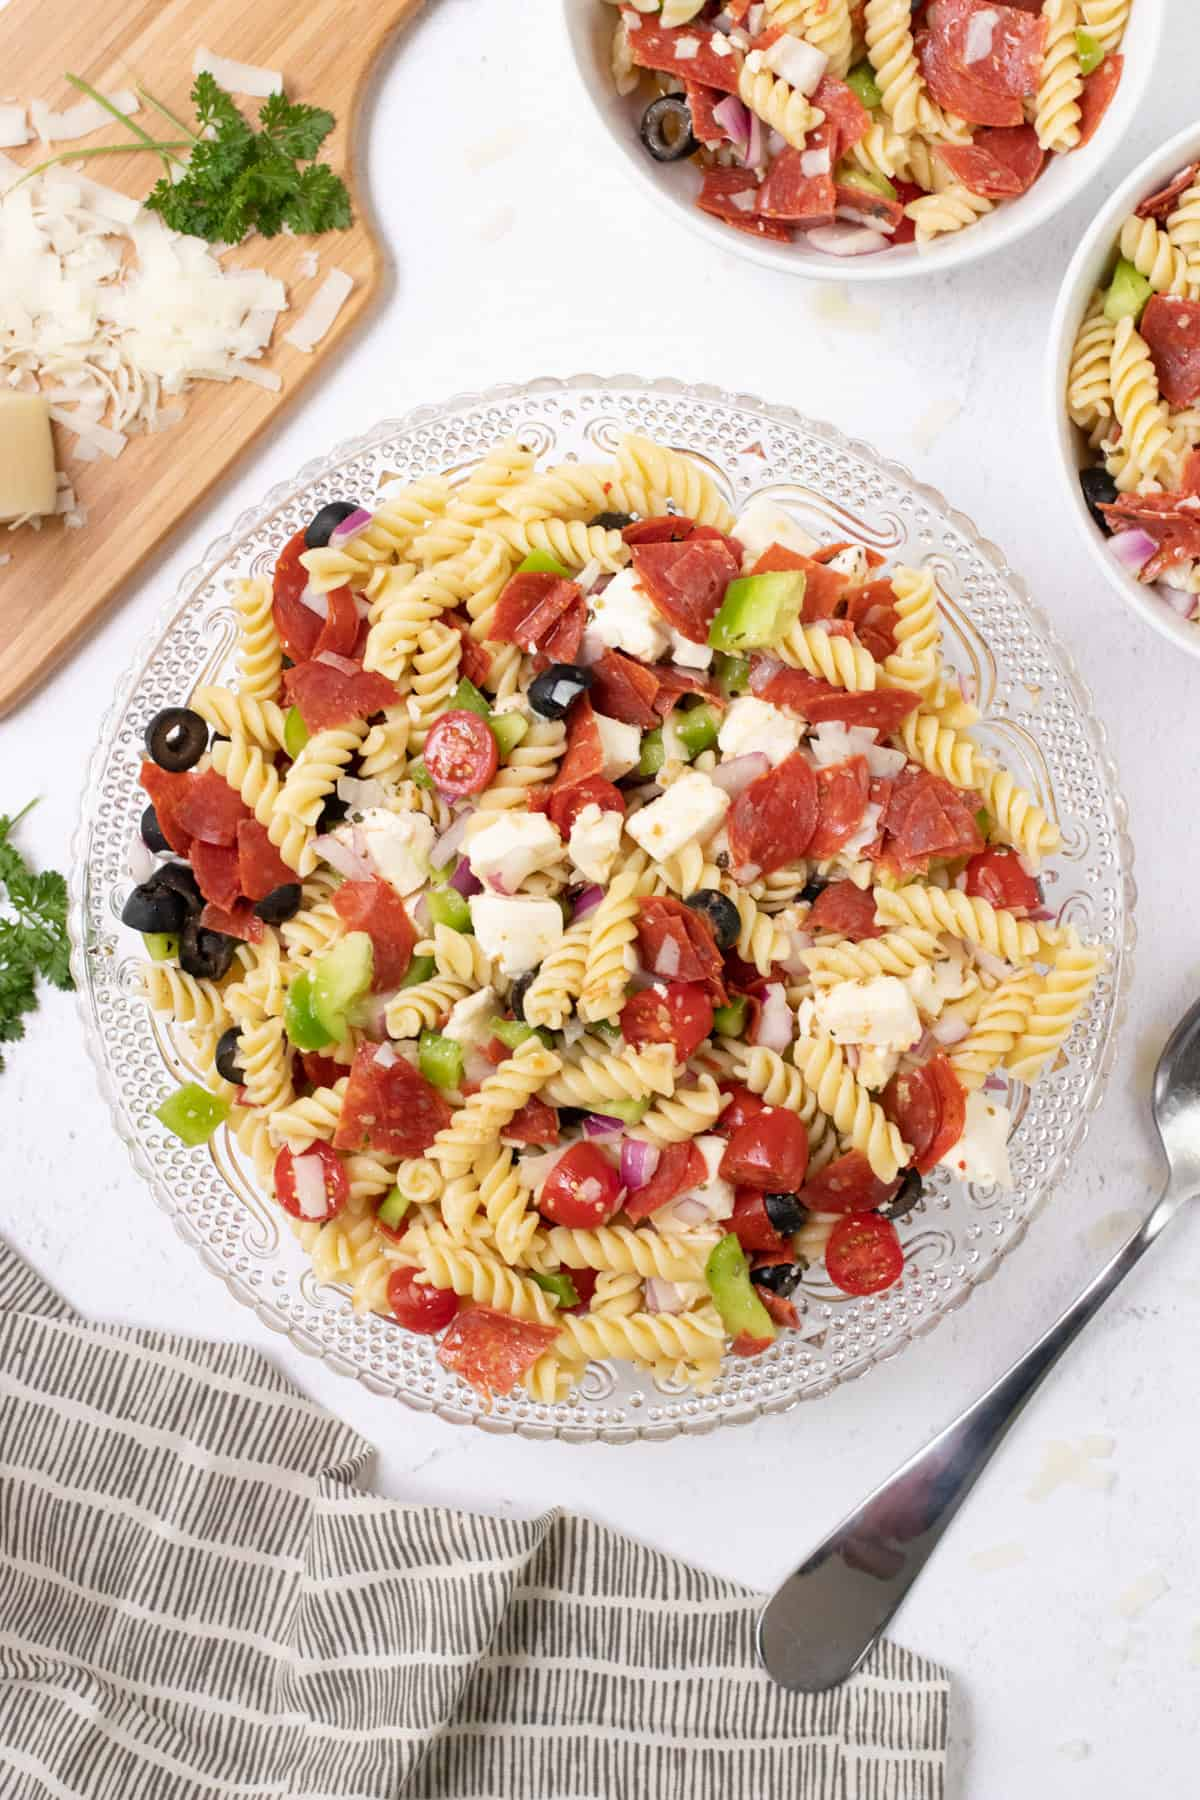 Large glass bowl of Italian pasta salad with pepperoni and fresh vegetables with cutting board of shredded cheese and smaller bowls of pasta salad in upper background.